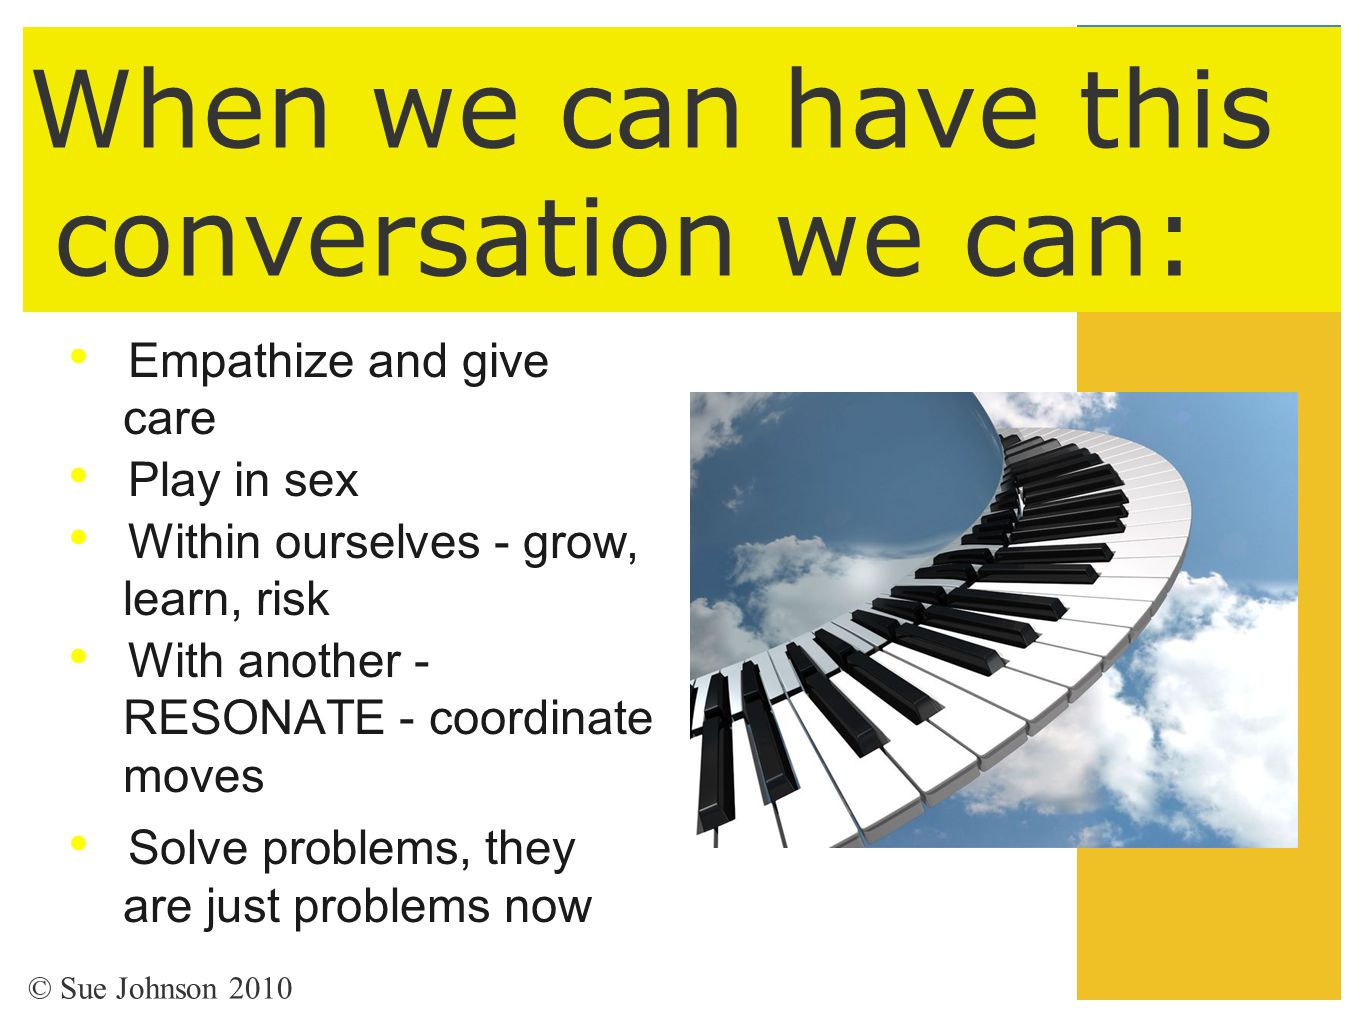 When we can have this conversation we can: Empathize and give care Play in sex Within ourselves - grow, learn, risk With another - RESONATE - coordina